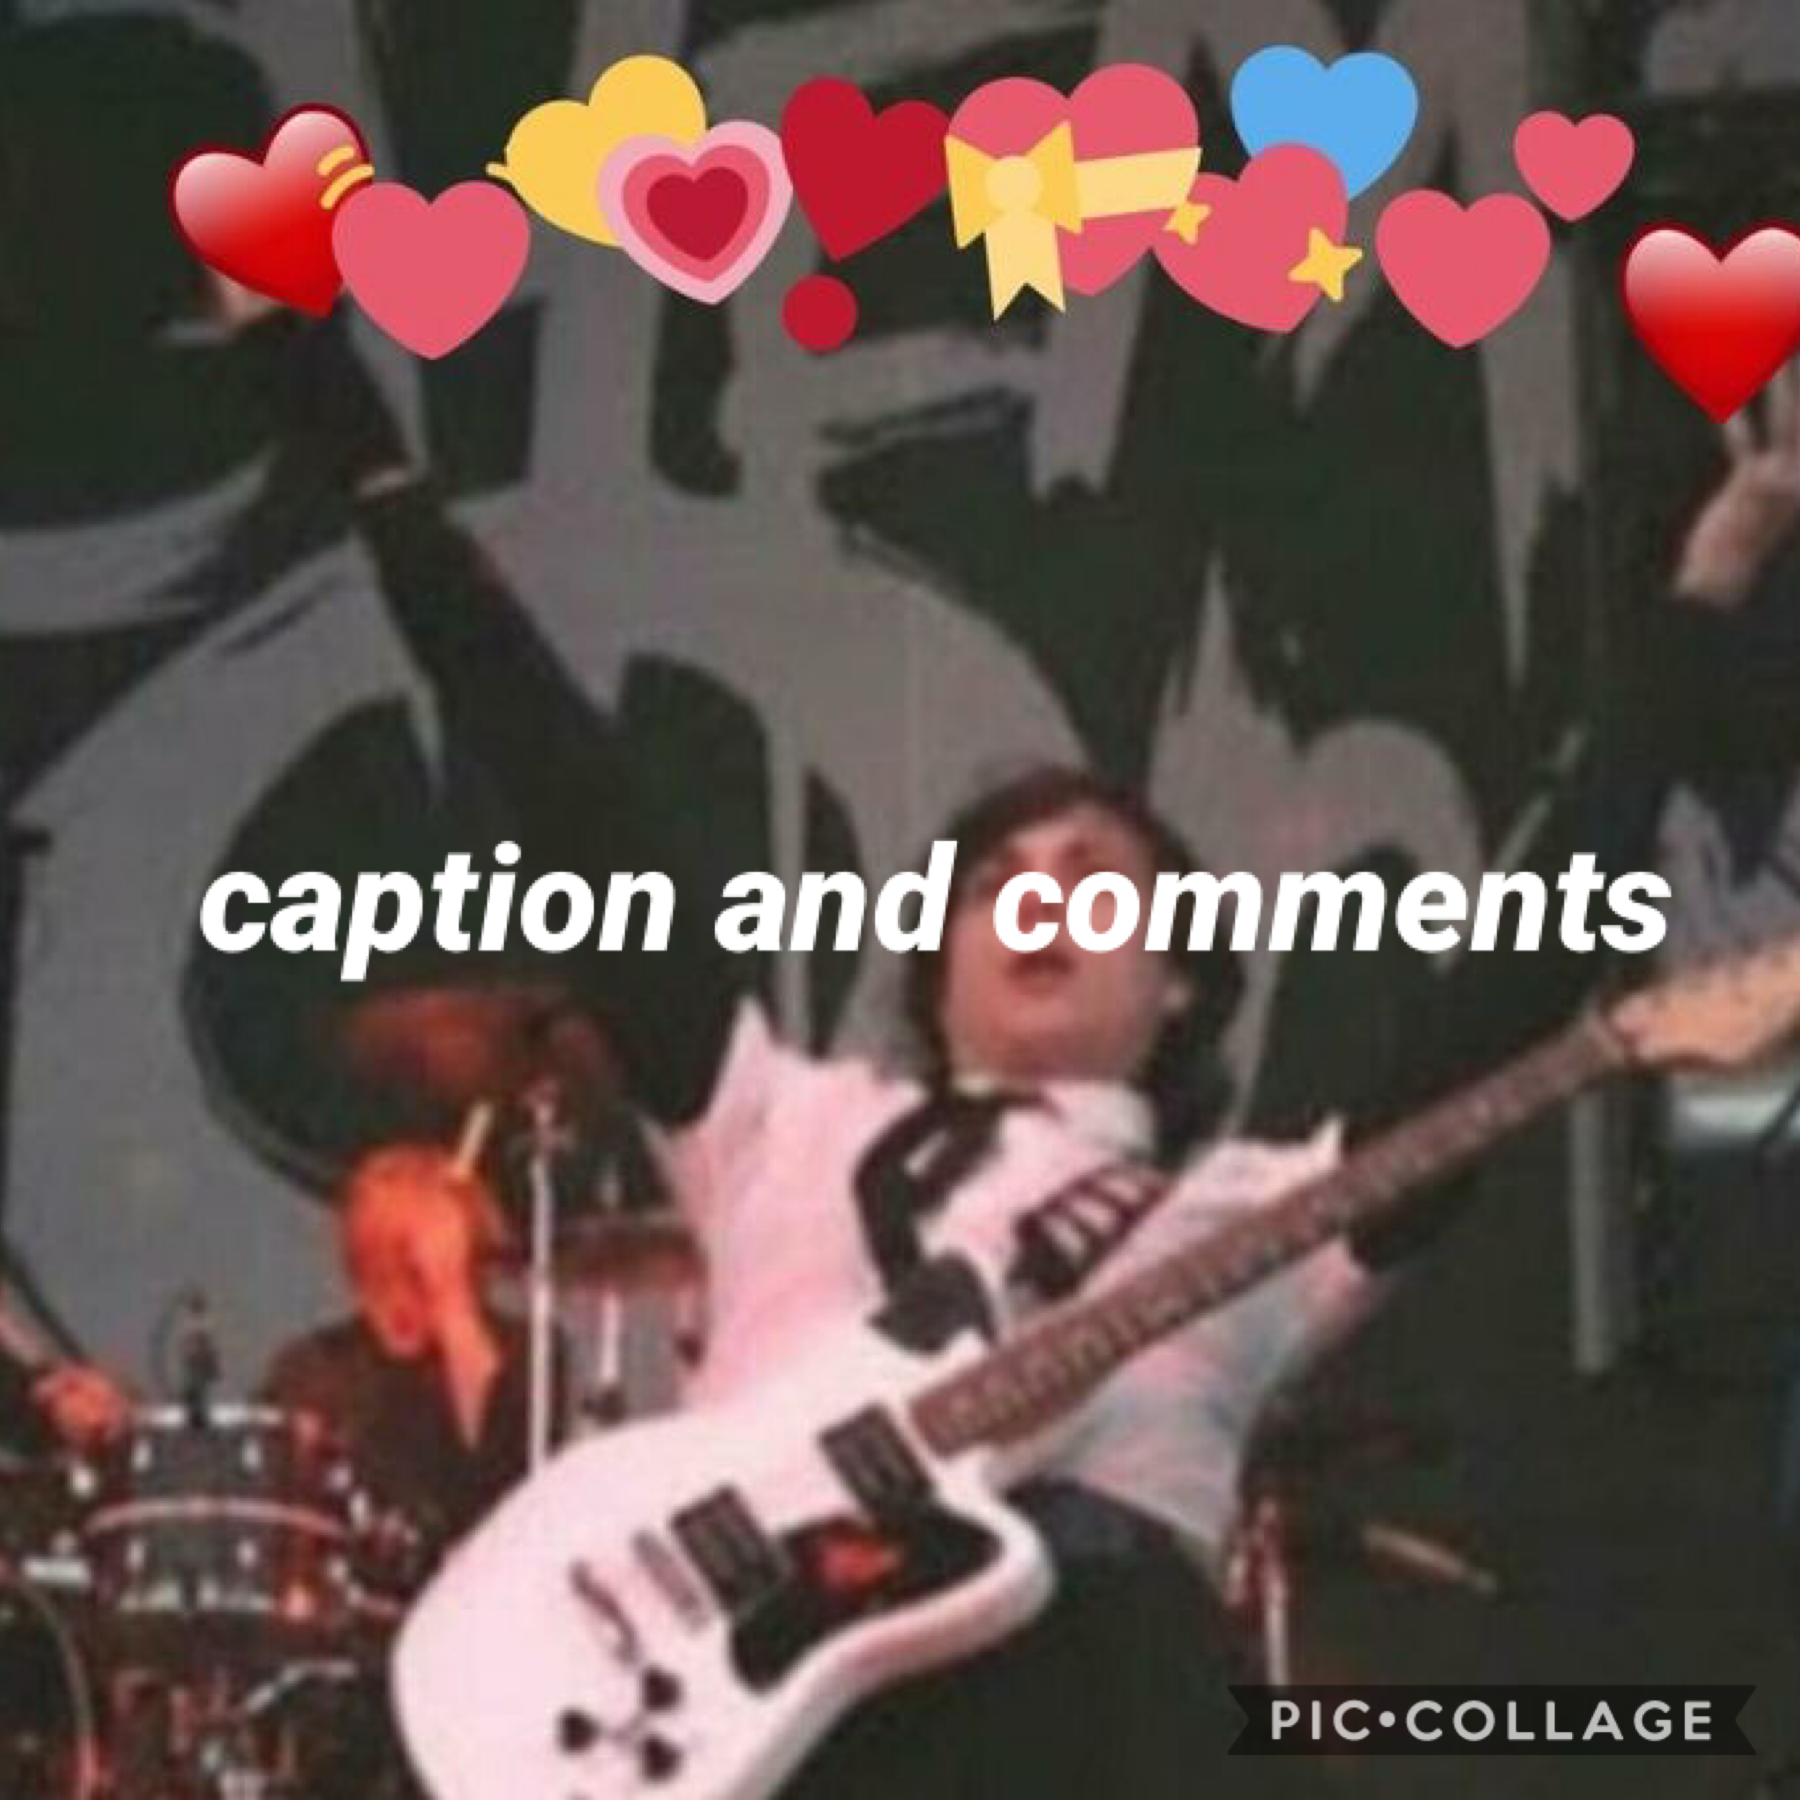 hii, i have a little announcement about this account. as you can tell, i haven't been posting any collages anymore and have been inactive. this is because i honestly have no time to make edits anymore. school is going pretty good right now, but it's A LOT